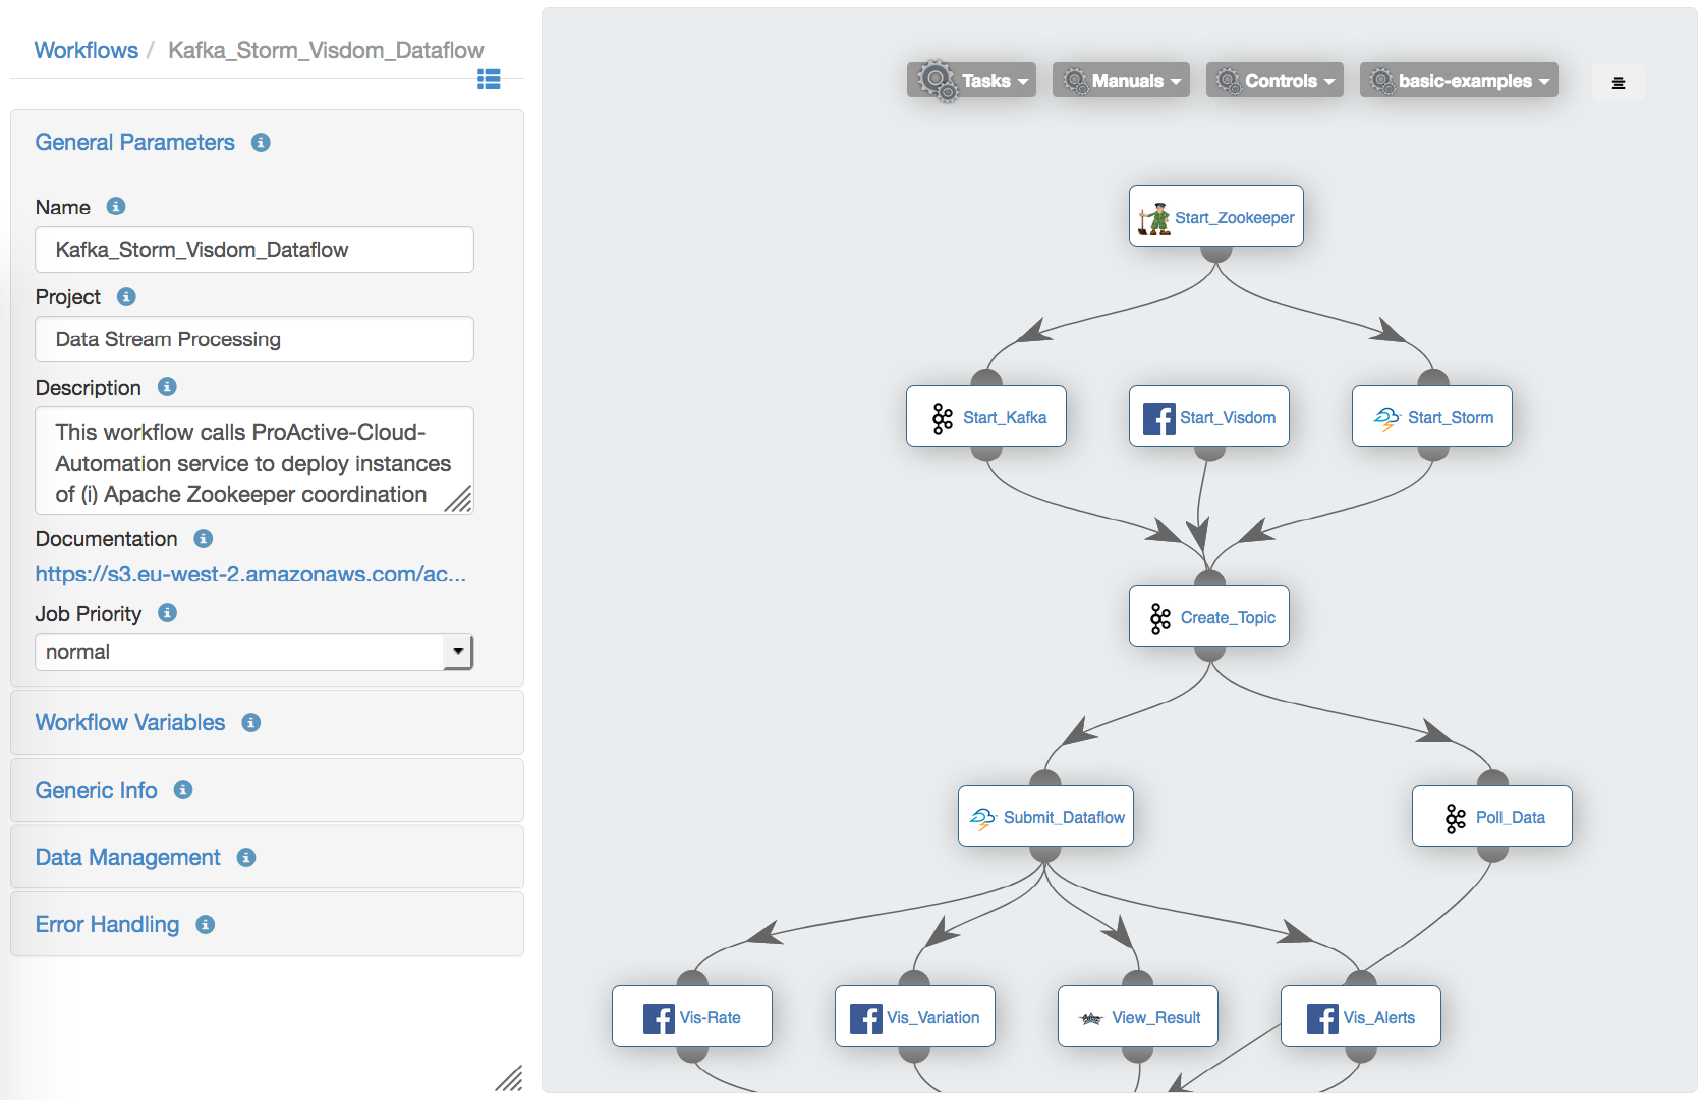 images/product-screenshots/proactive-workflow-big-data.png